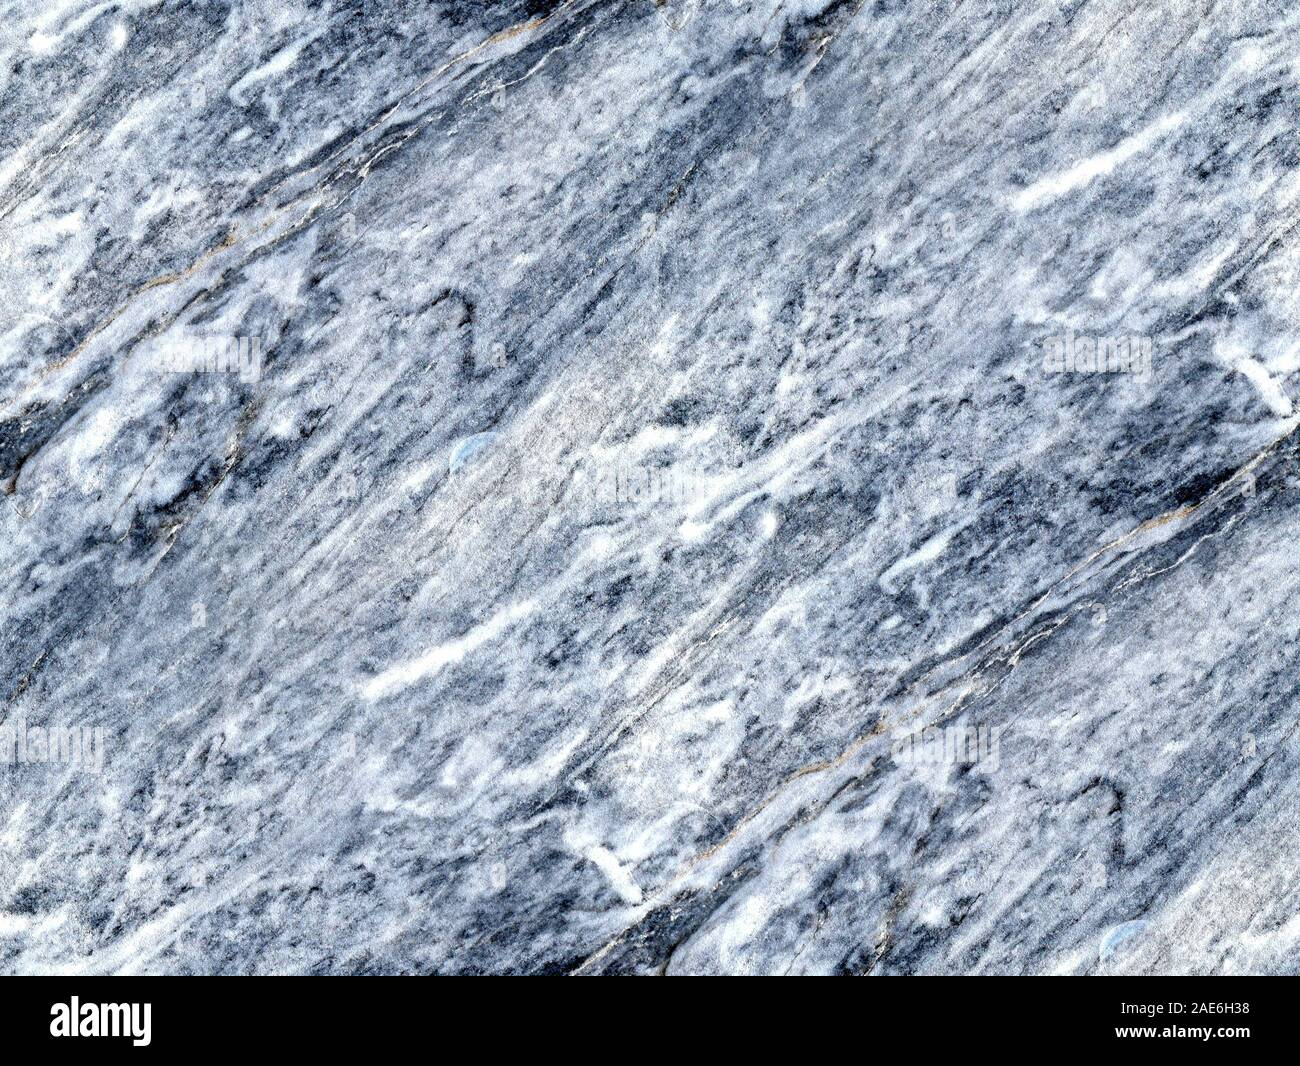 Page 2 Seamless Texture Tile High Resolution Stock Photography And Images Alamy